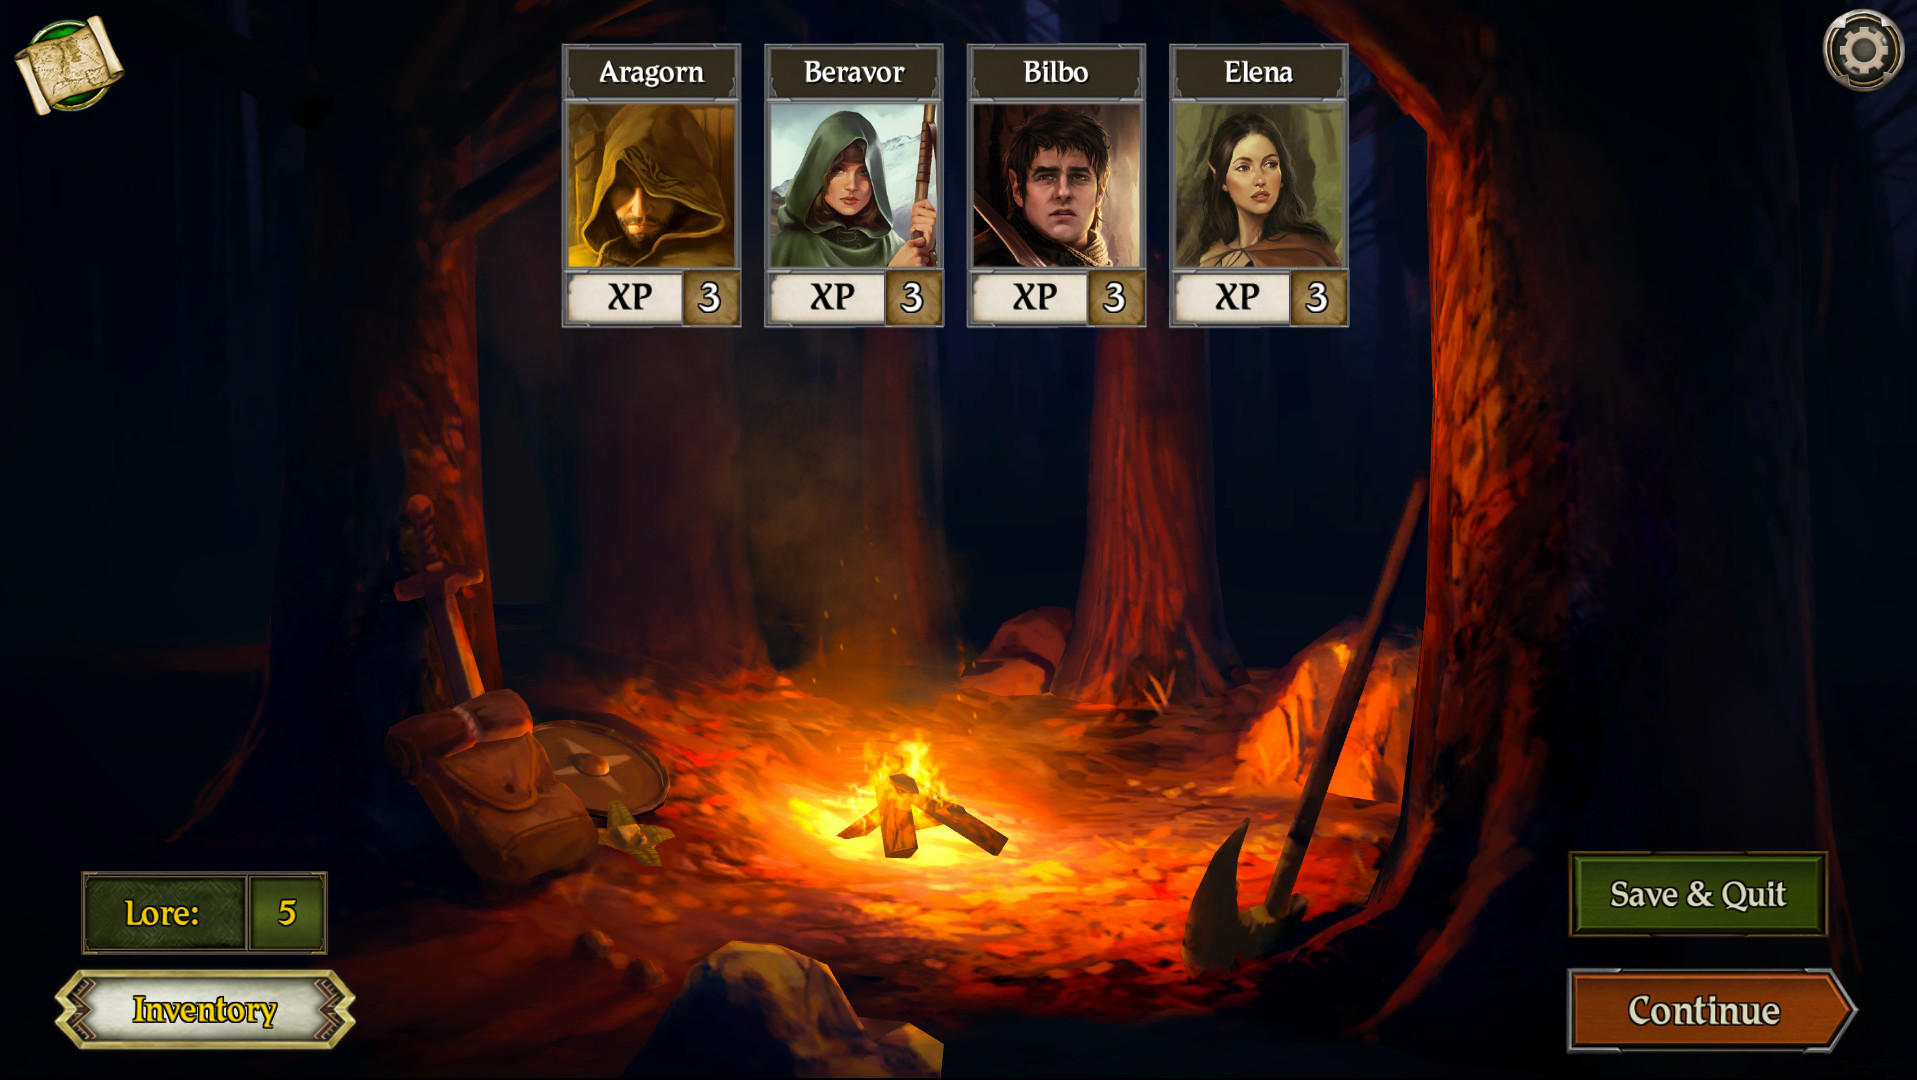 The Lord of the Rings: Journeys in Middle-earth on Steam